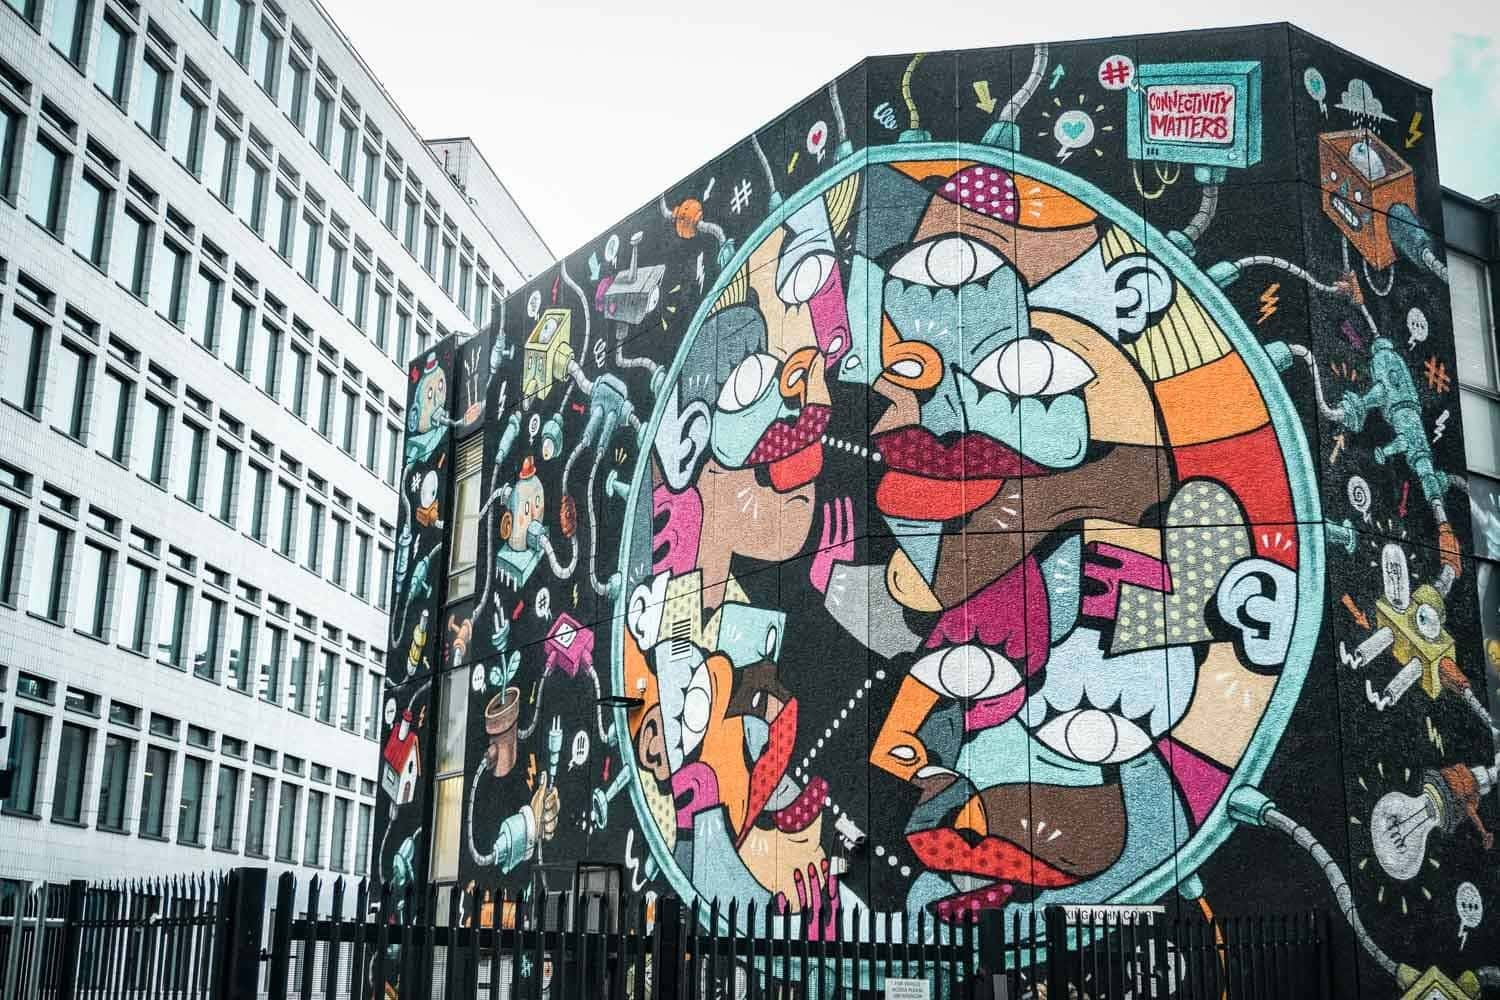 Large street art in London